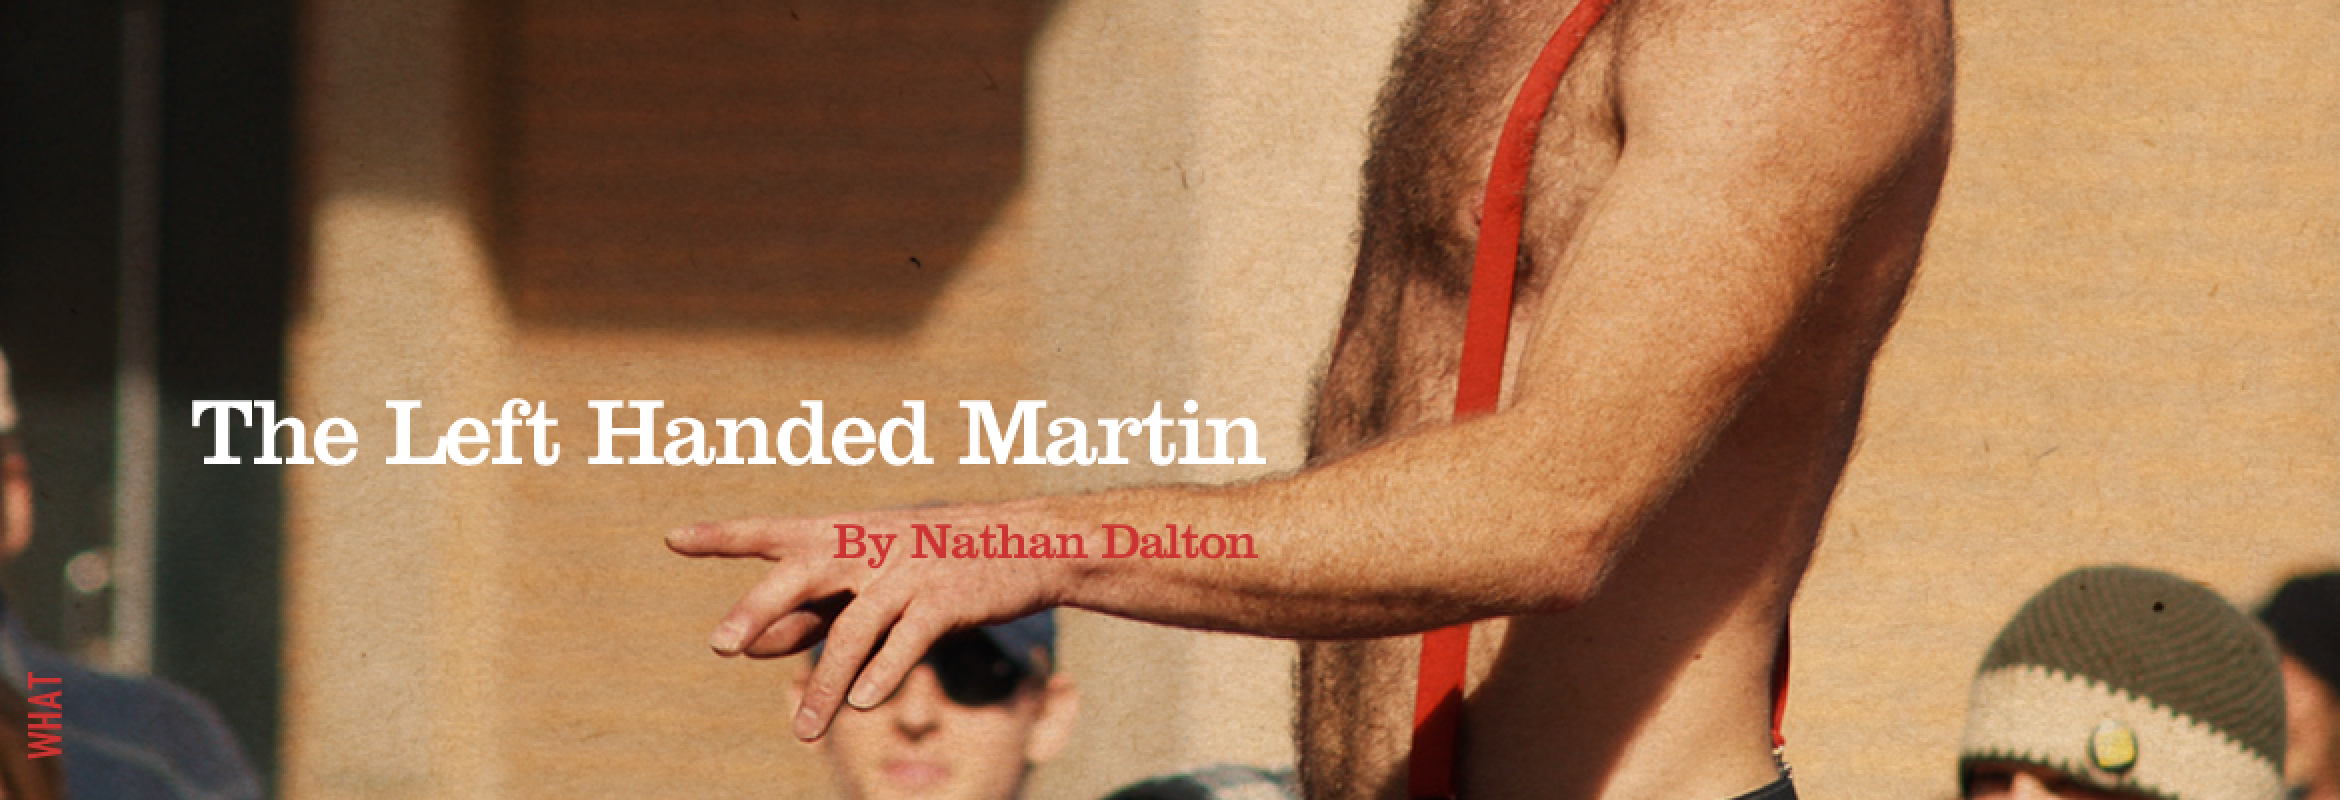 the-left-handed-martin-by-nathan-dalton@2x.jpg